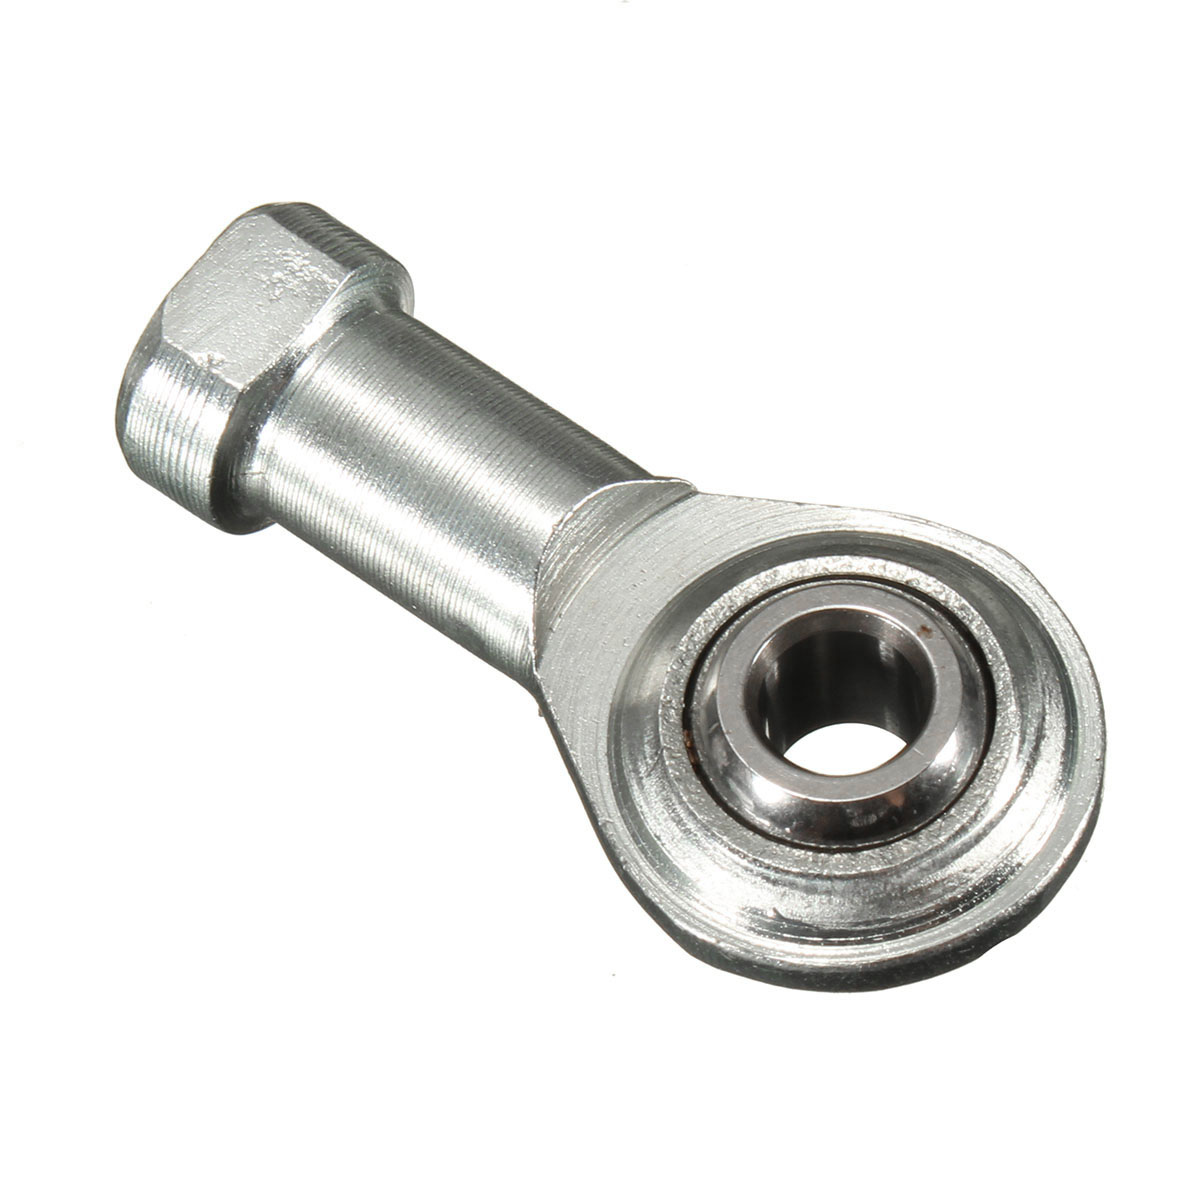 10Pcs M6 X 1Mm Right Hand Thread Rod End Joint Bearing 6Mm Female Thread Joint Ball Bearing